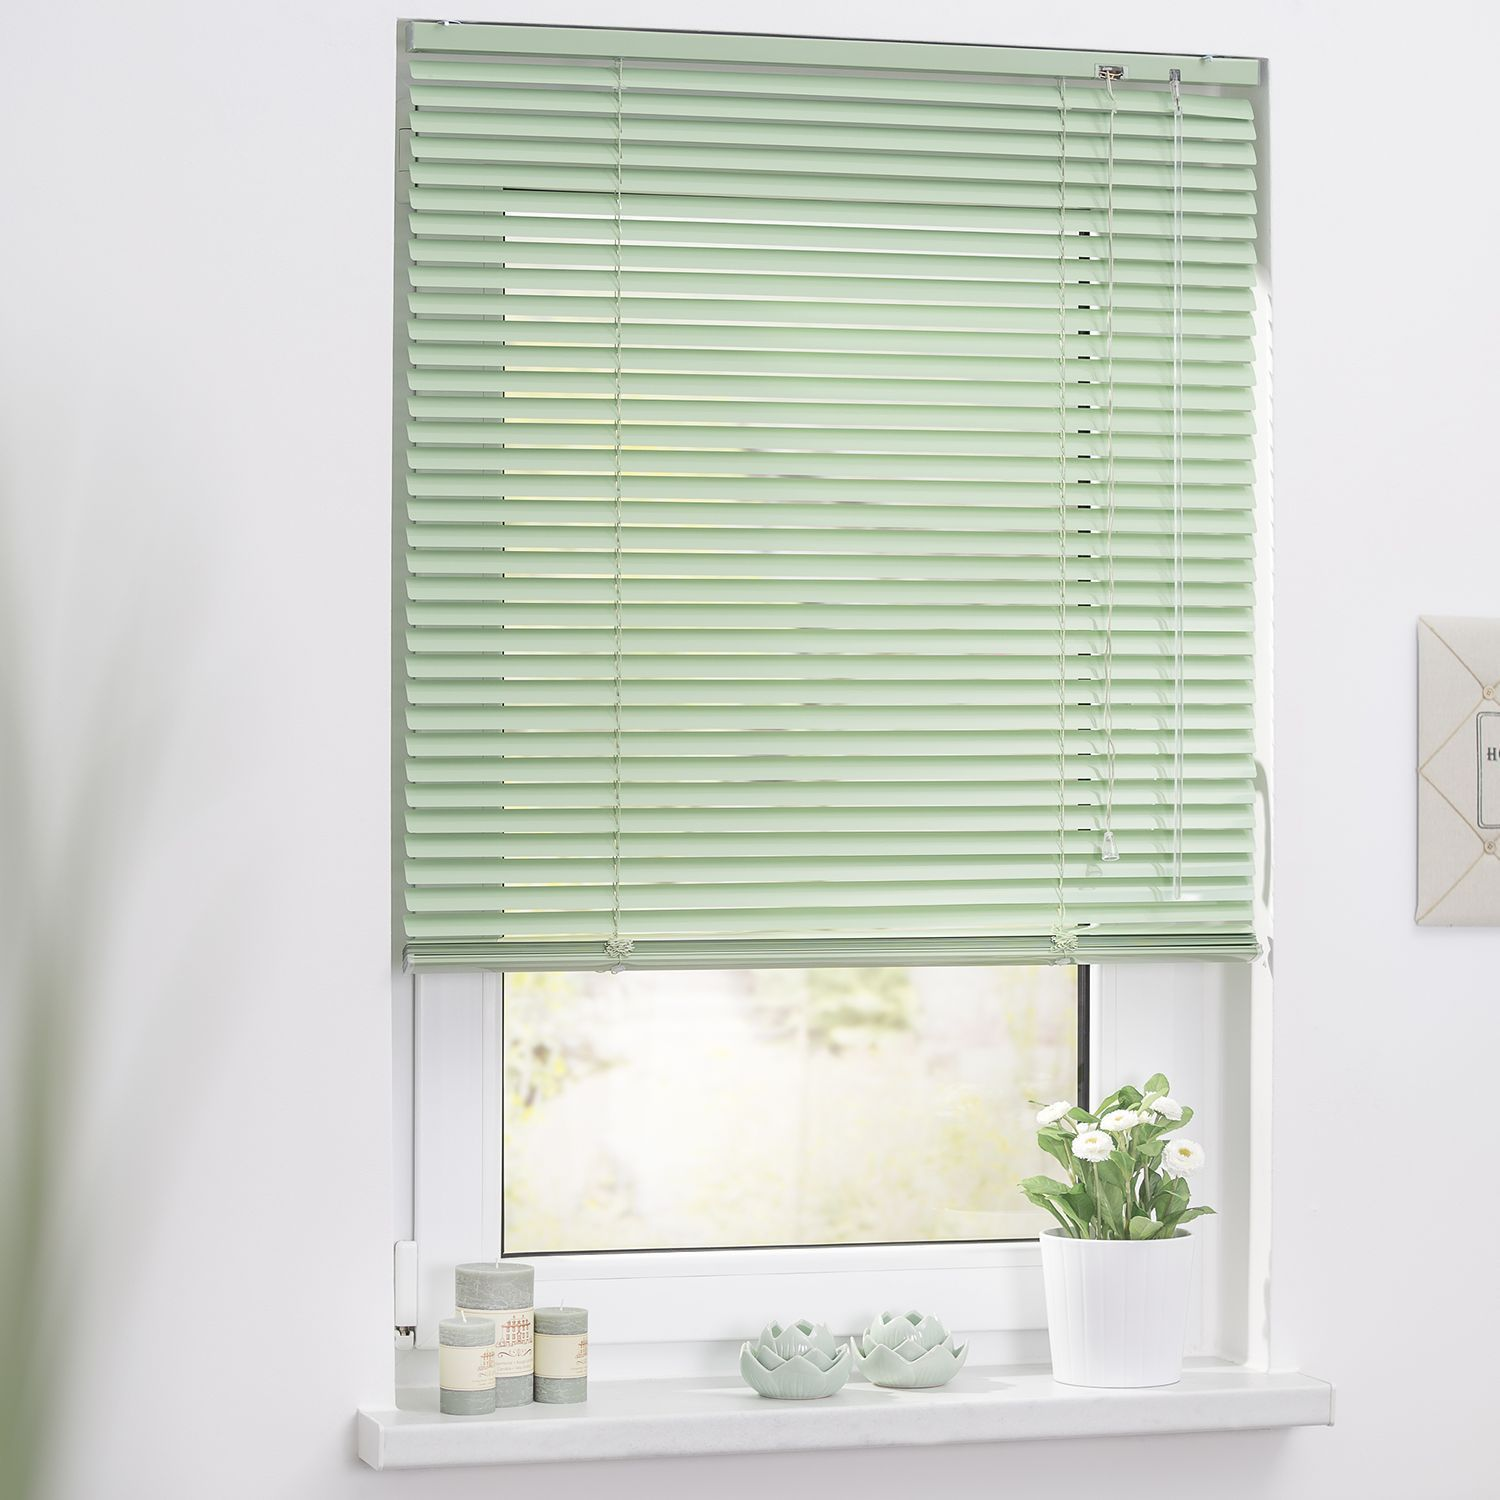 Hottest Absolutely Free Roman Blinds With Shutters Tips Roman Blinds Are A Well Known Favourite Among Co Jalousien Jalousie Dachfenster Fensterrollos